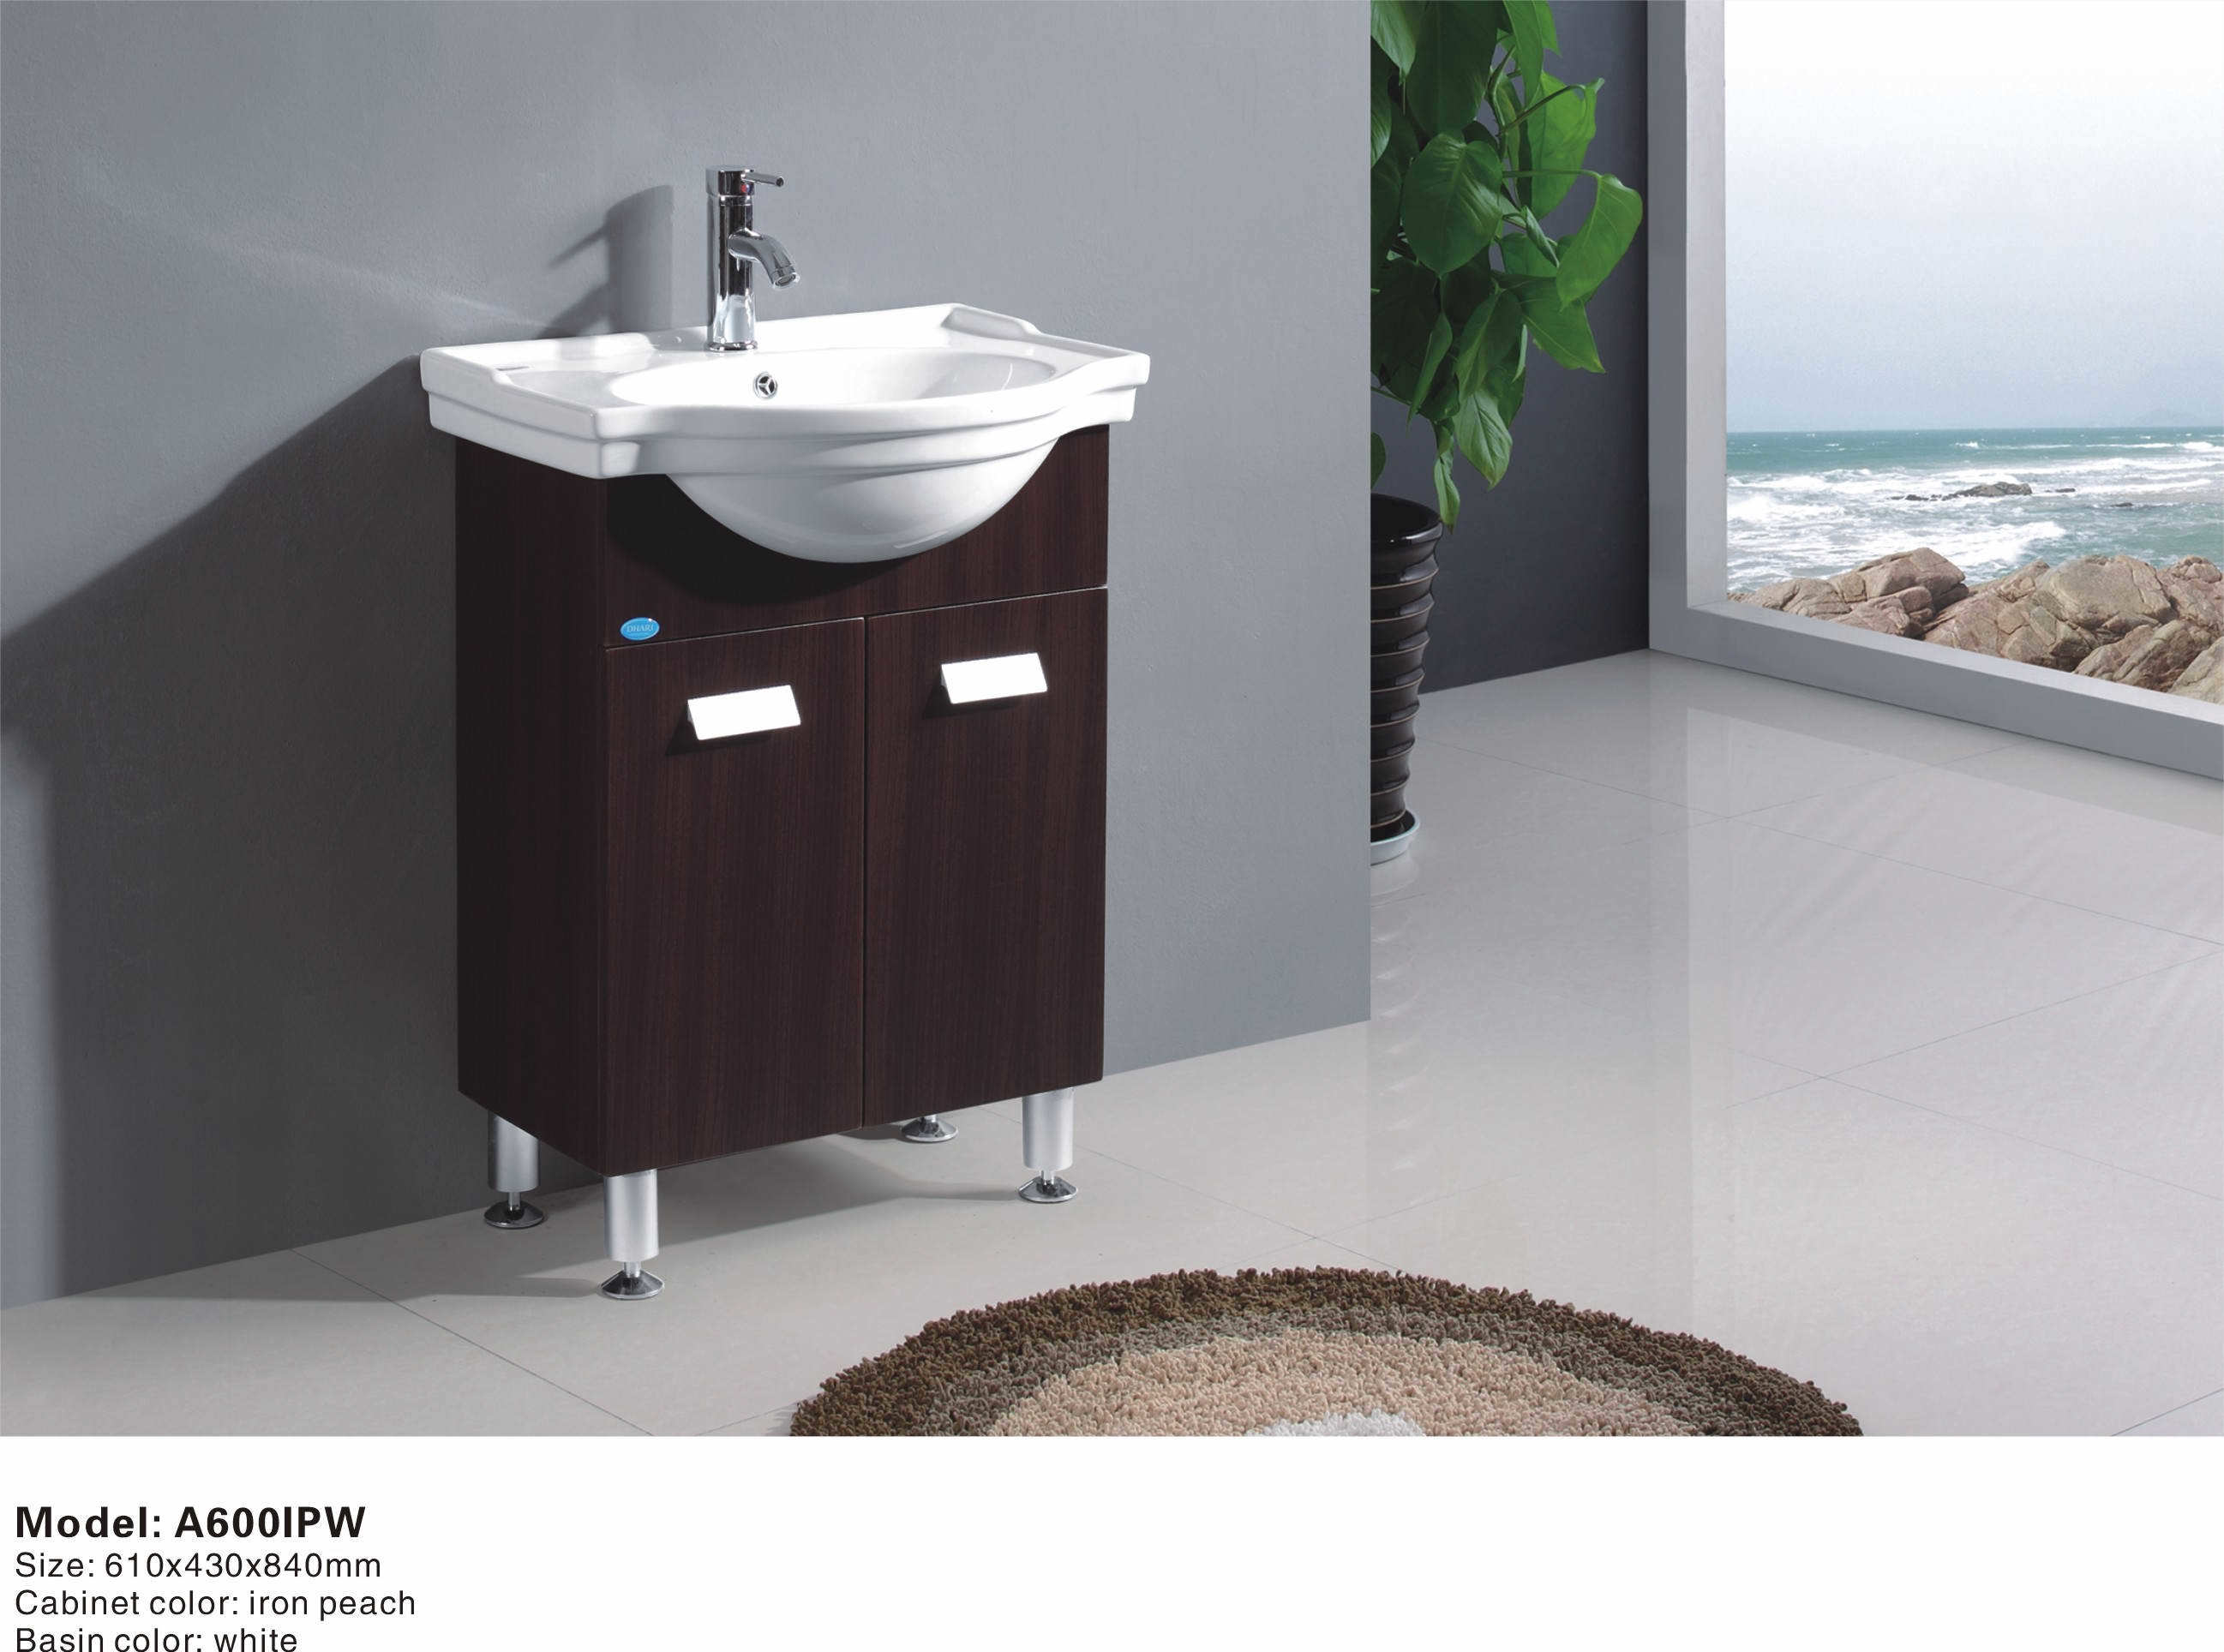 Small floor standing bathroom cabinet a600ipw china for Floor standing bathroom furniture